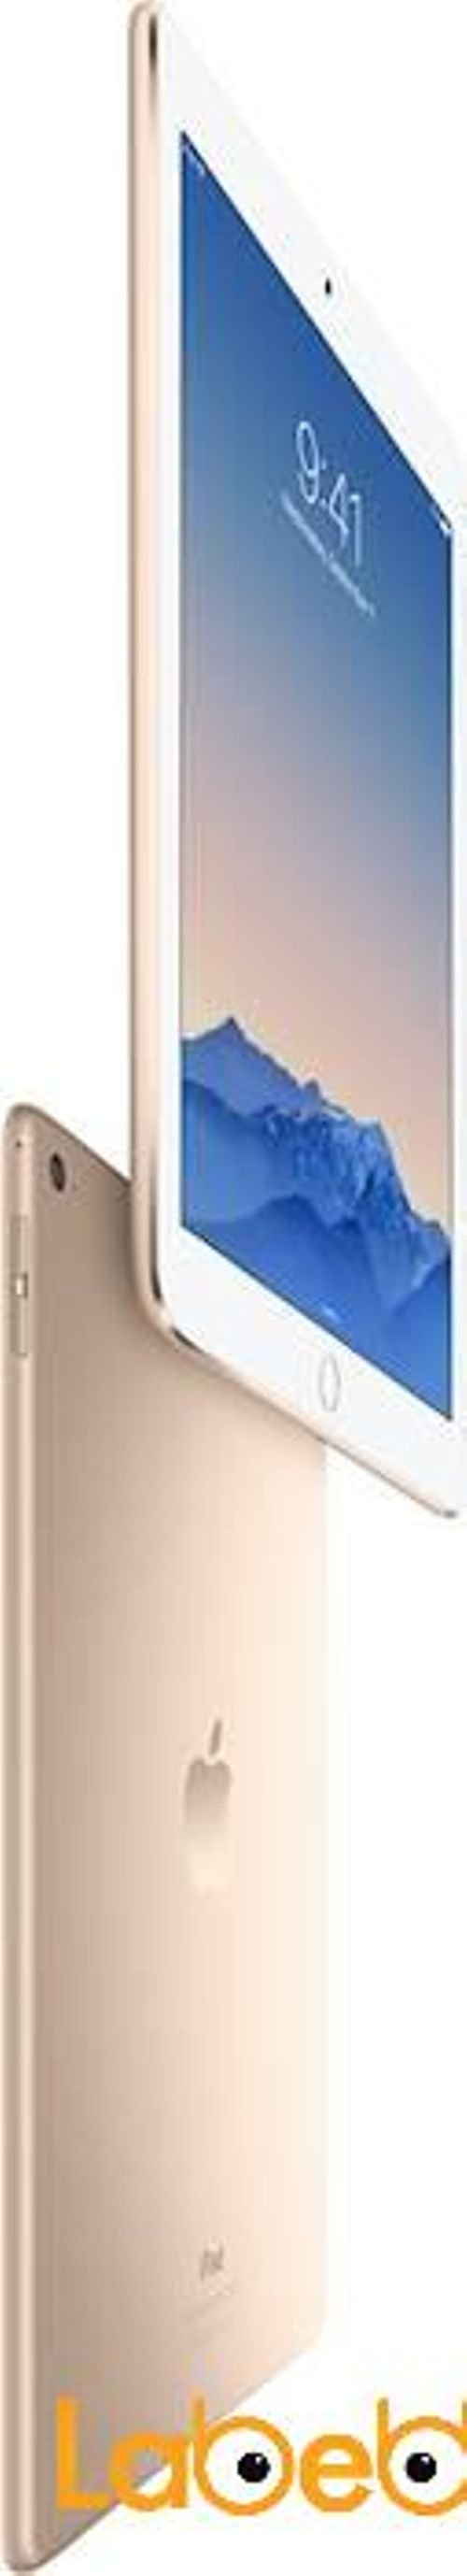 Apple ipad air 2 screen and back wifi 16GB Gold A1566 model